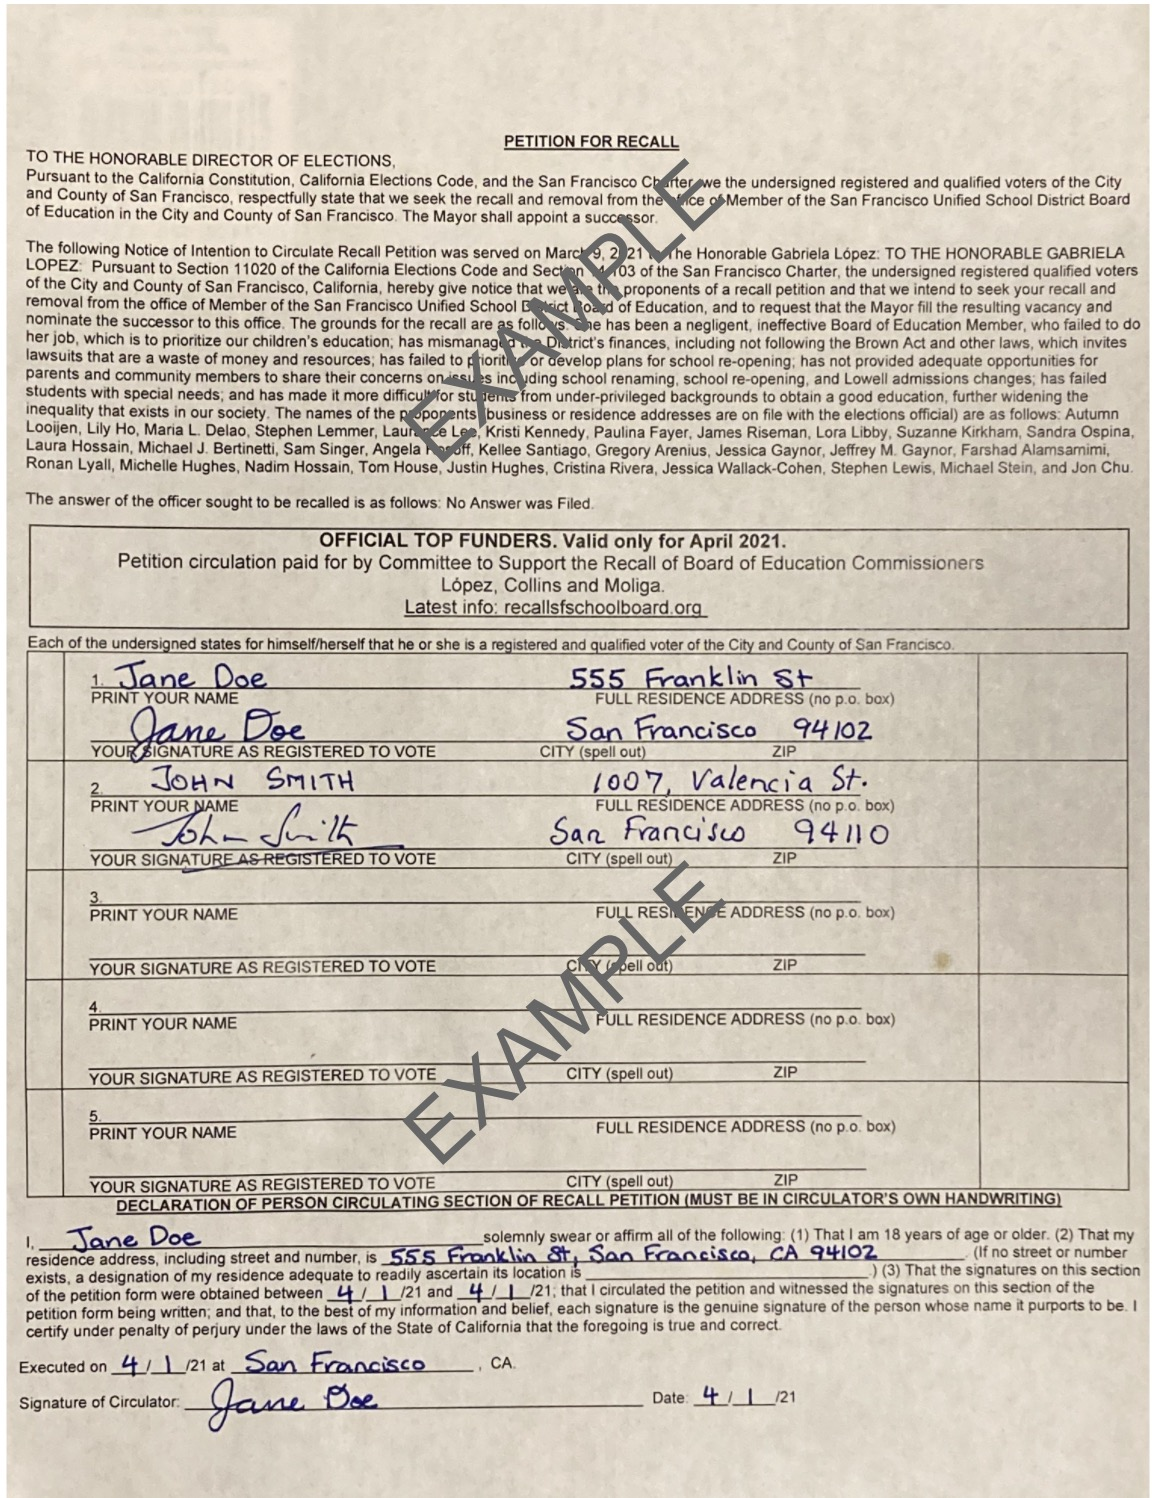 Example signed petition